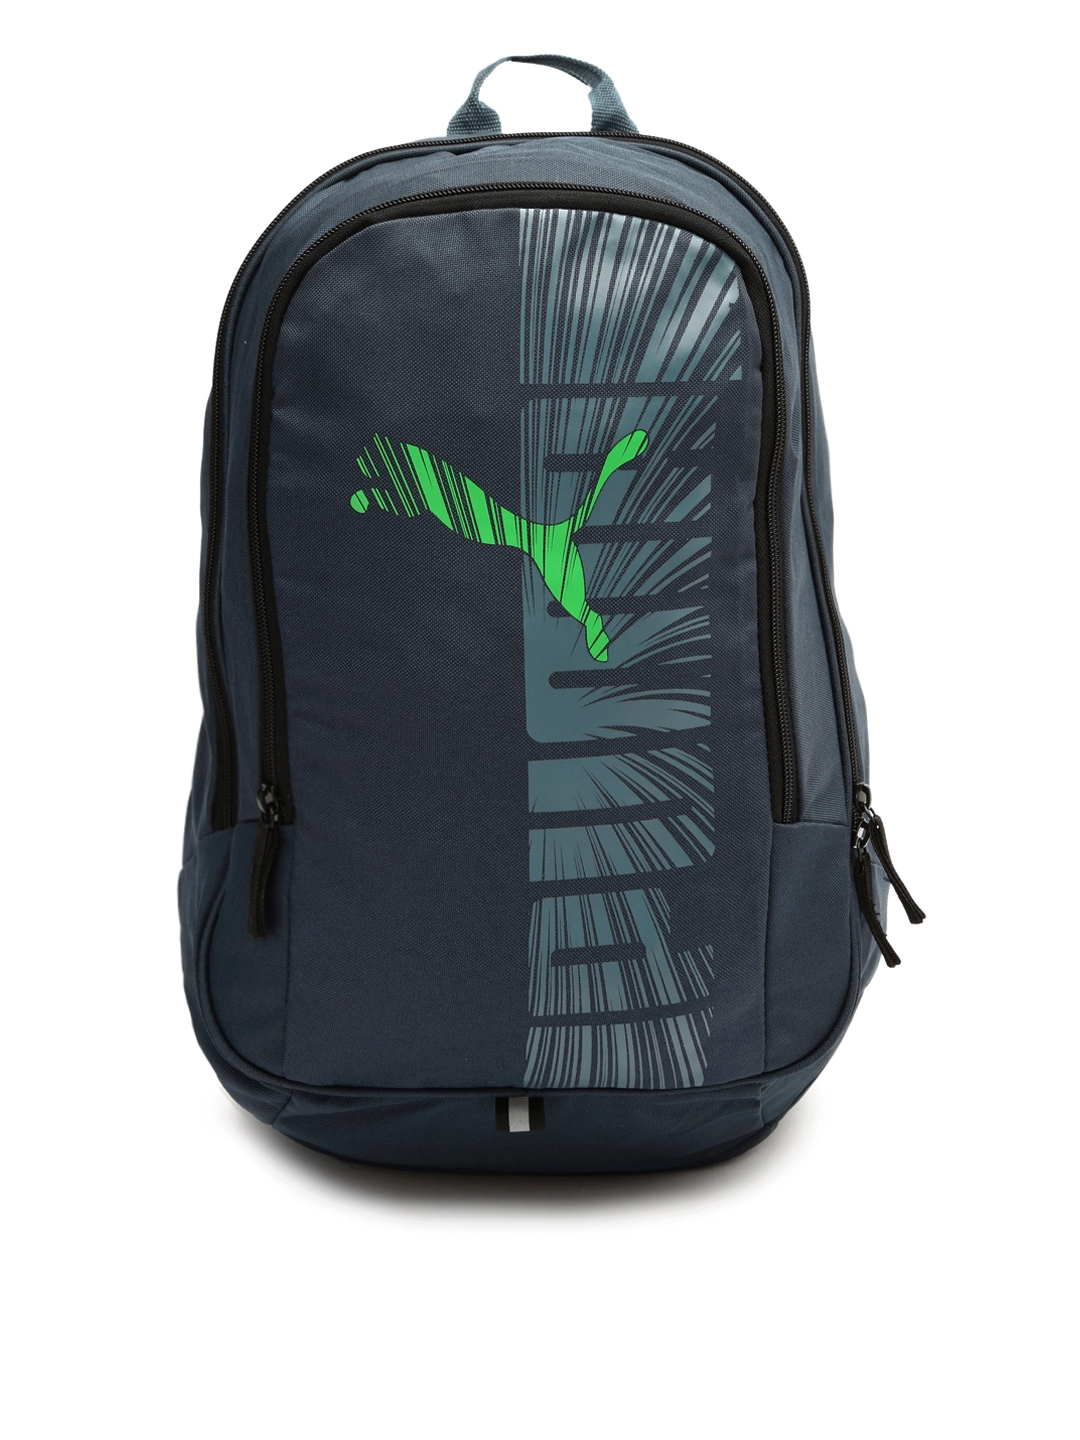 Travel Trolley Bags Online Shopping